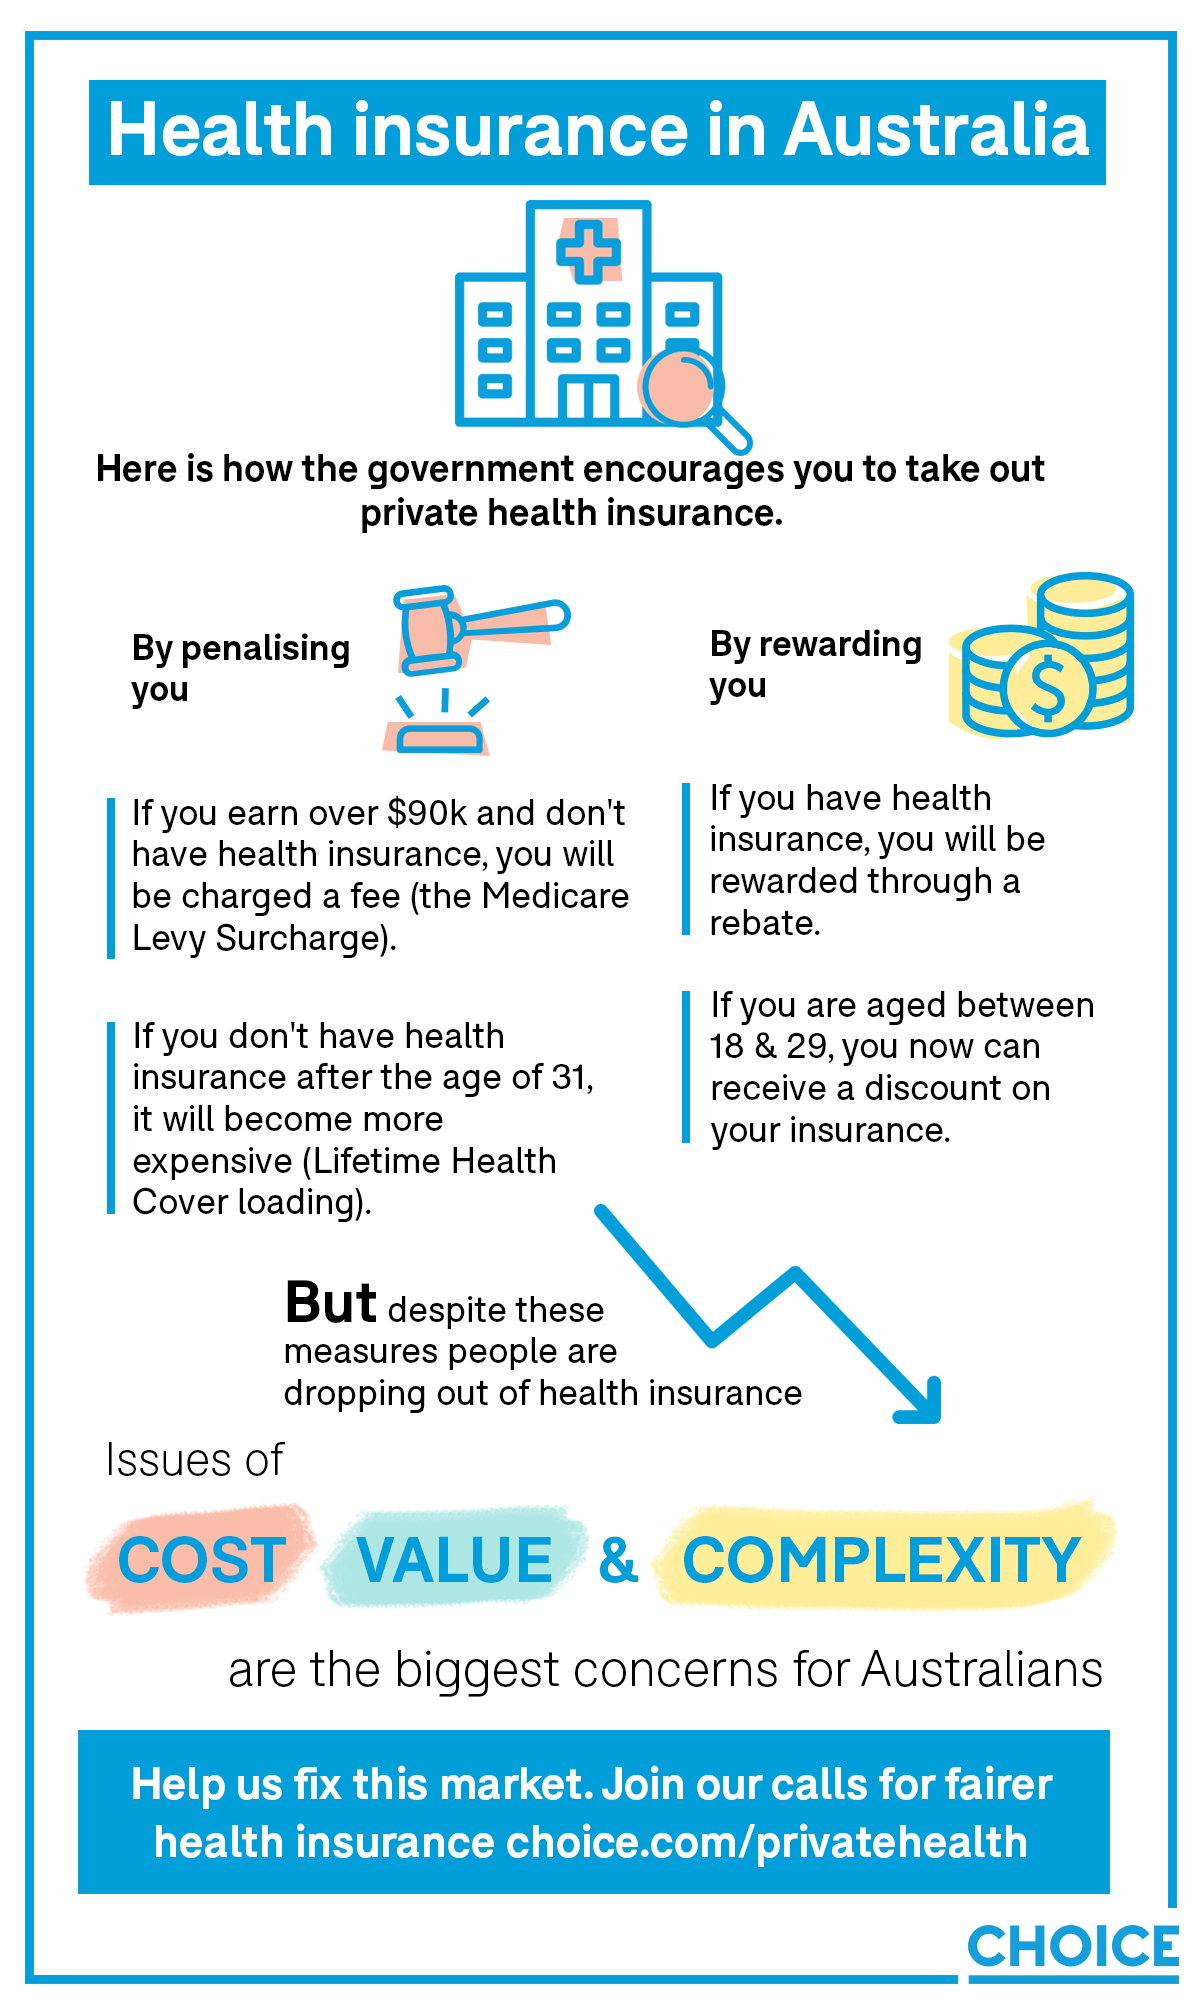 Health insurance in Australia - infographic.